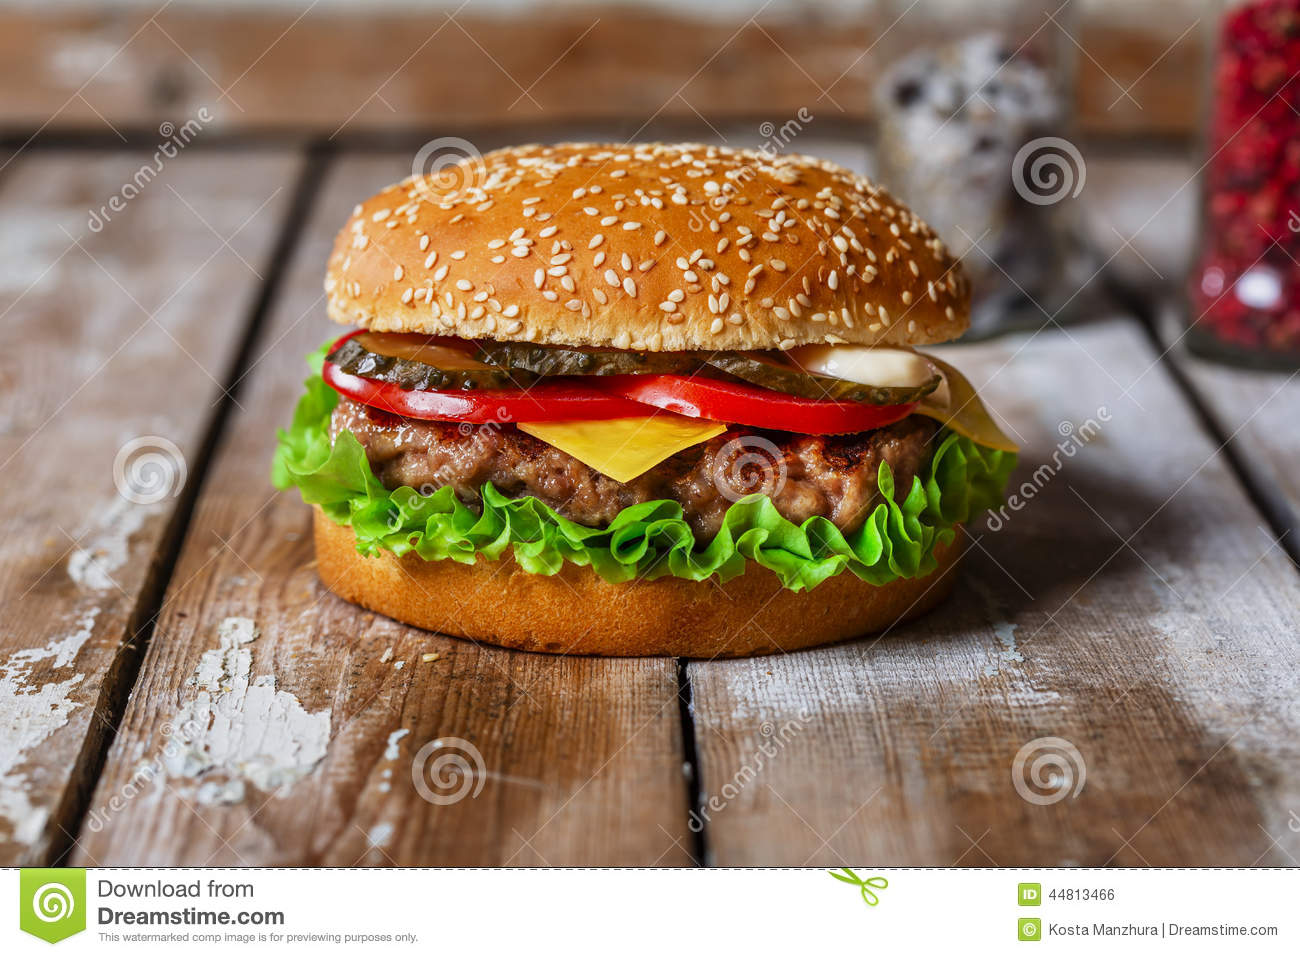 Hamburger with cutlet grilled